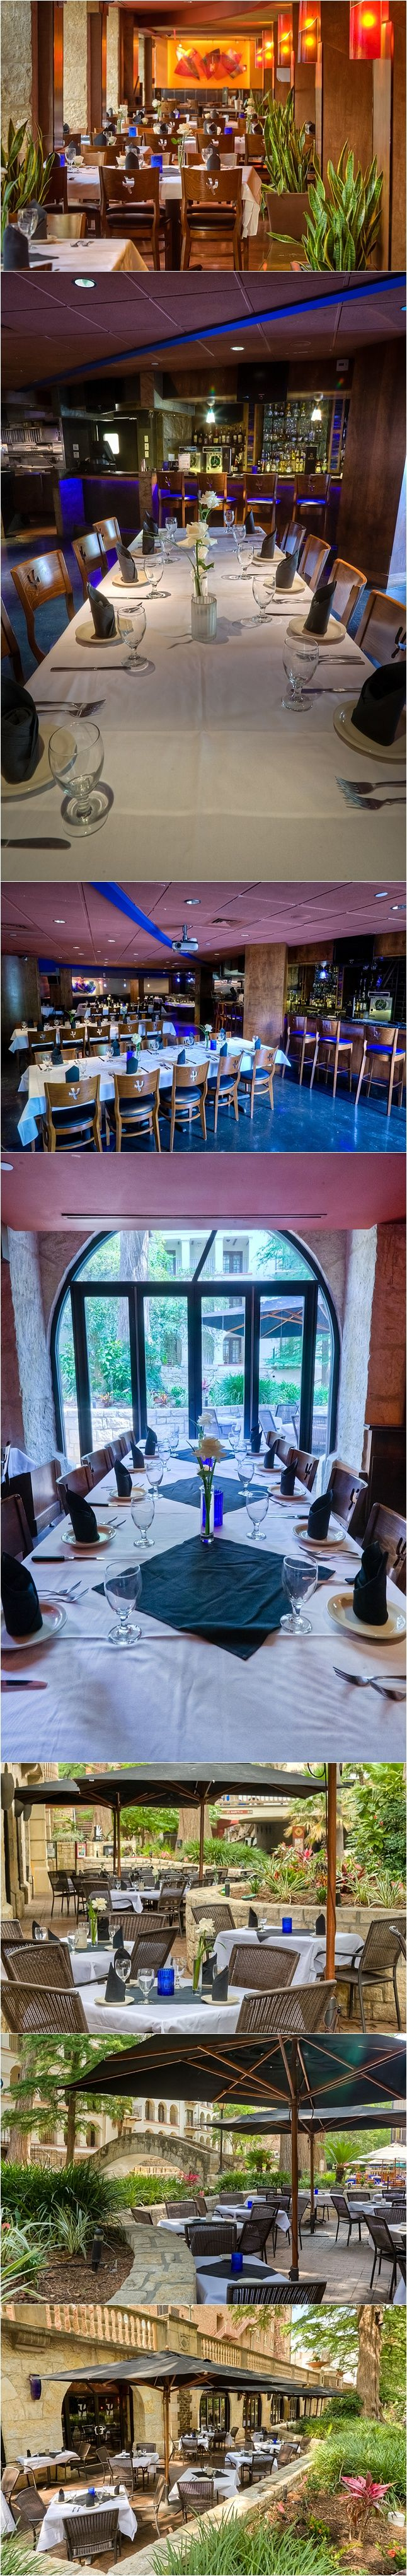 Small weddings in san antonio - Great Restaurant Located On The River Walk Great For Rehearsal Dinners And Intimate Receptions Via San Antonio Weddings